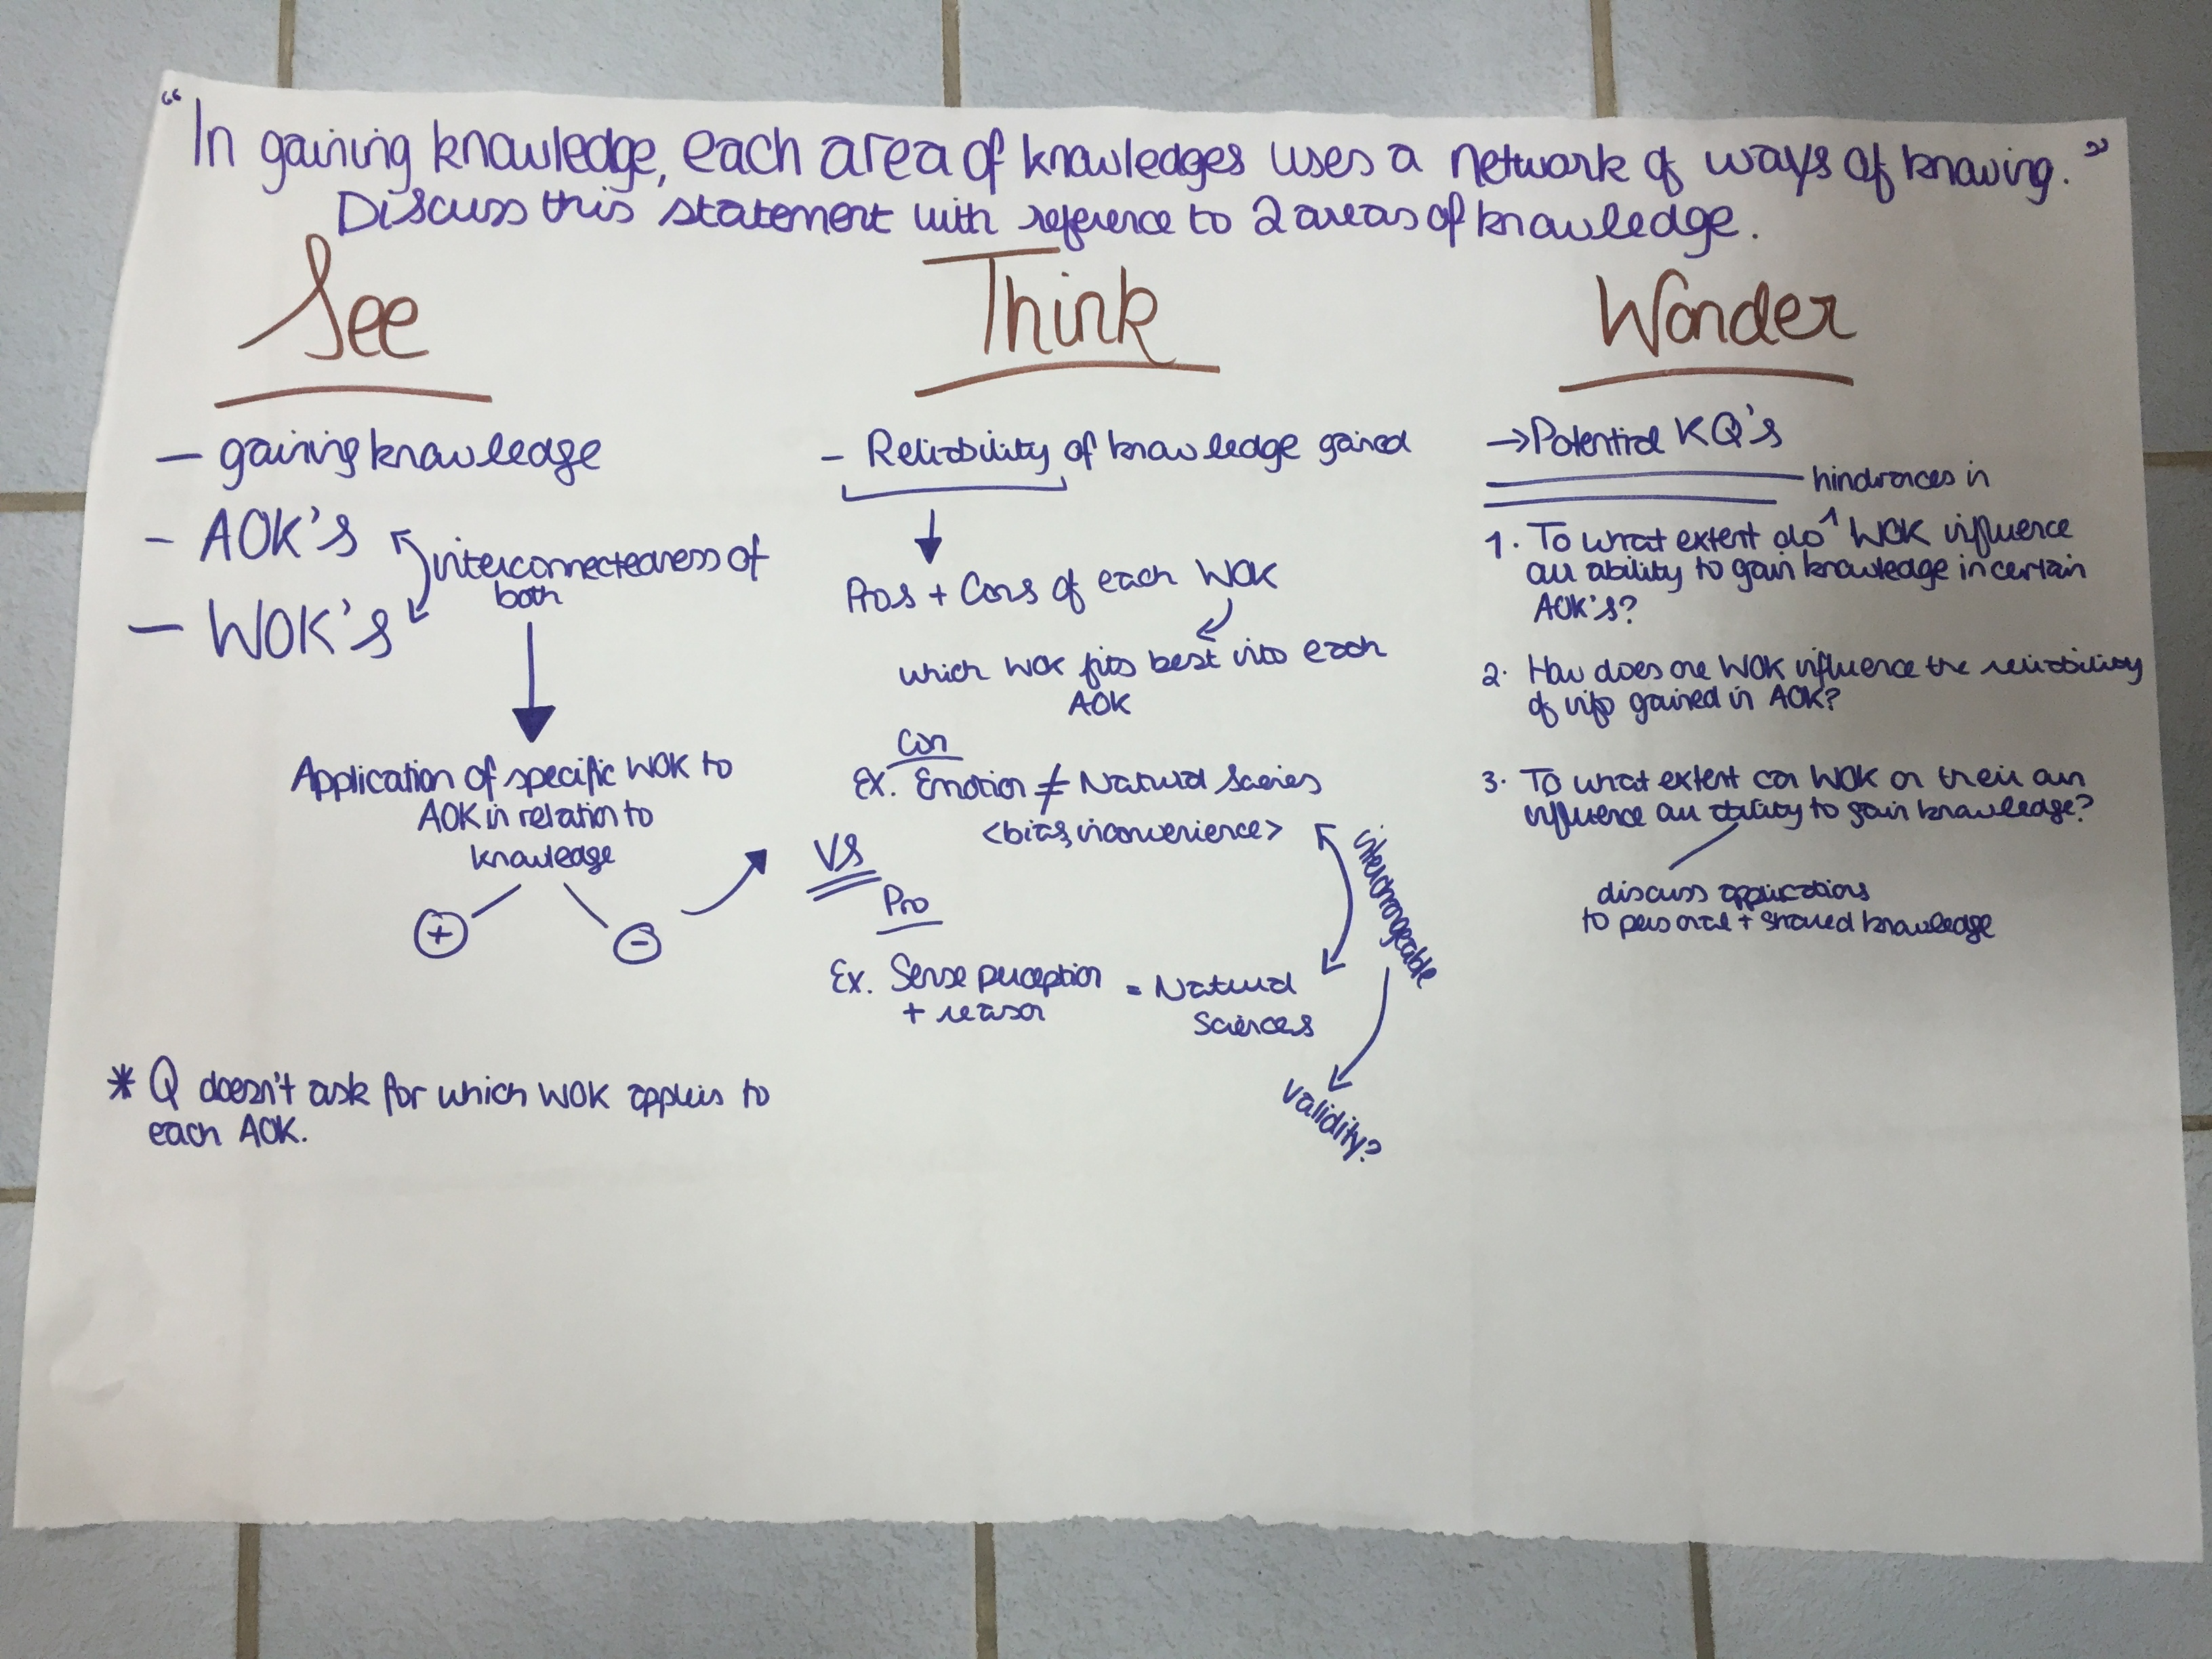 tok meets visible thinking the relevant educator overall i was very happy how this visible thinking routine allowed my student to make meaning of the prompts in a simple clear and uncomplicated way